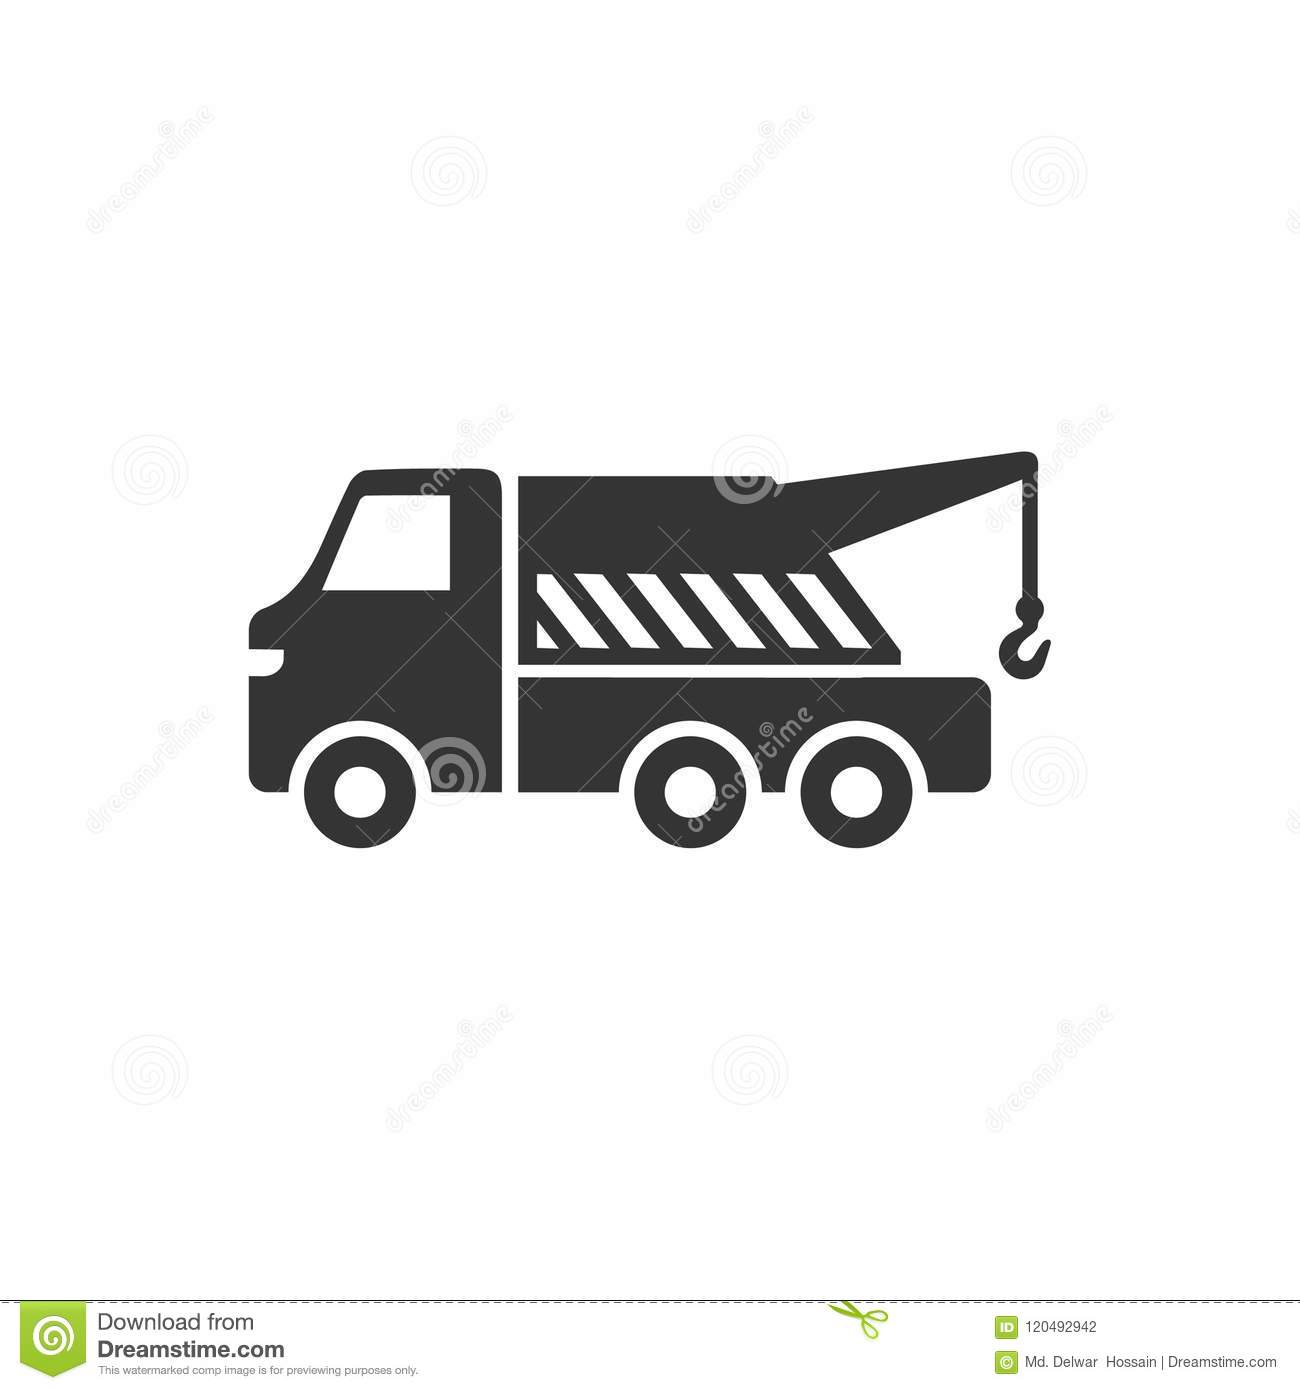 Tow Truck Icon Stock Vector Illustration Of Crane Symbol 120492942